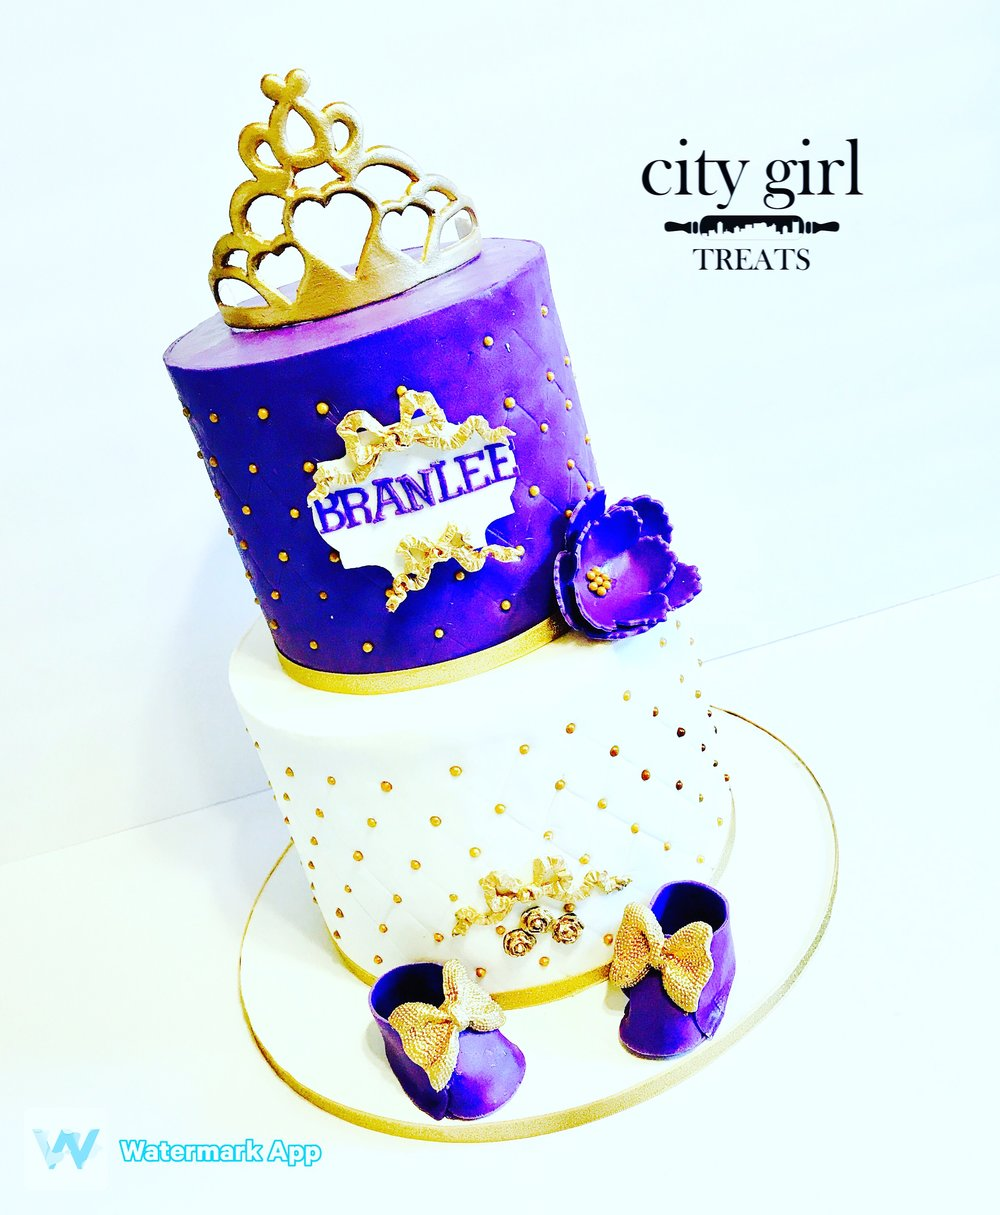 Designer Cakes Nashville TN Based Bakery, City Girl Treats Nashville Baby Shower Cakes